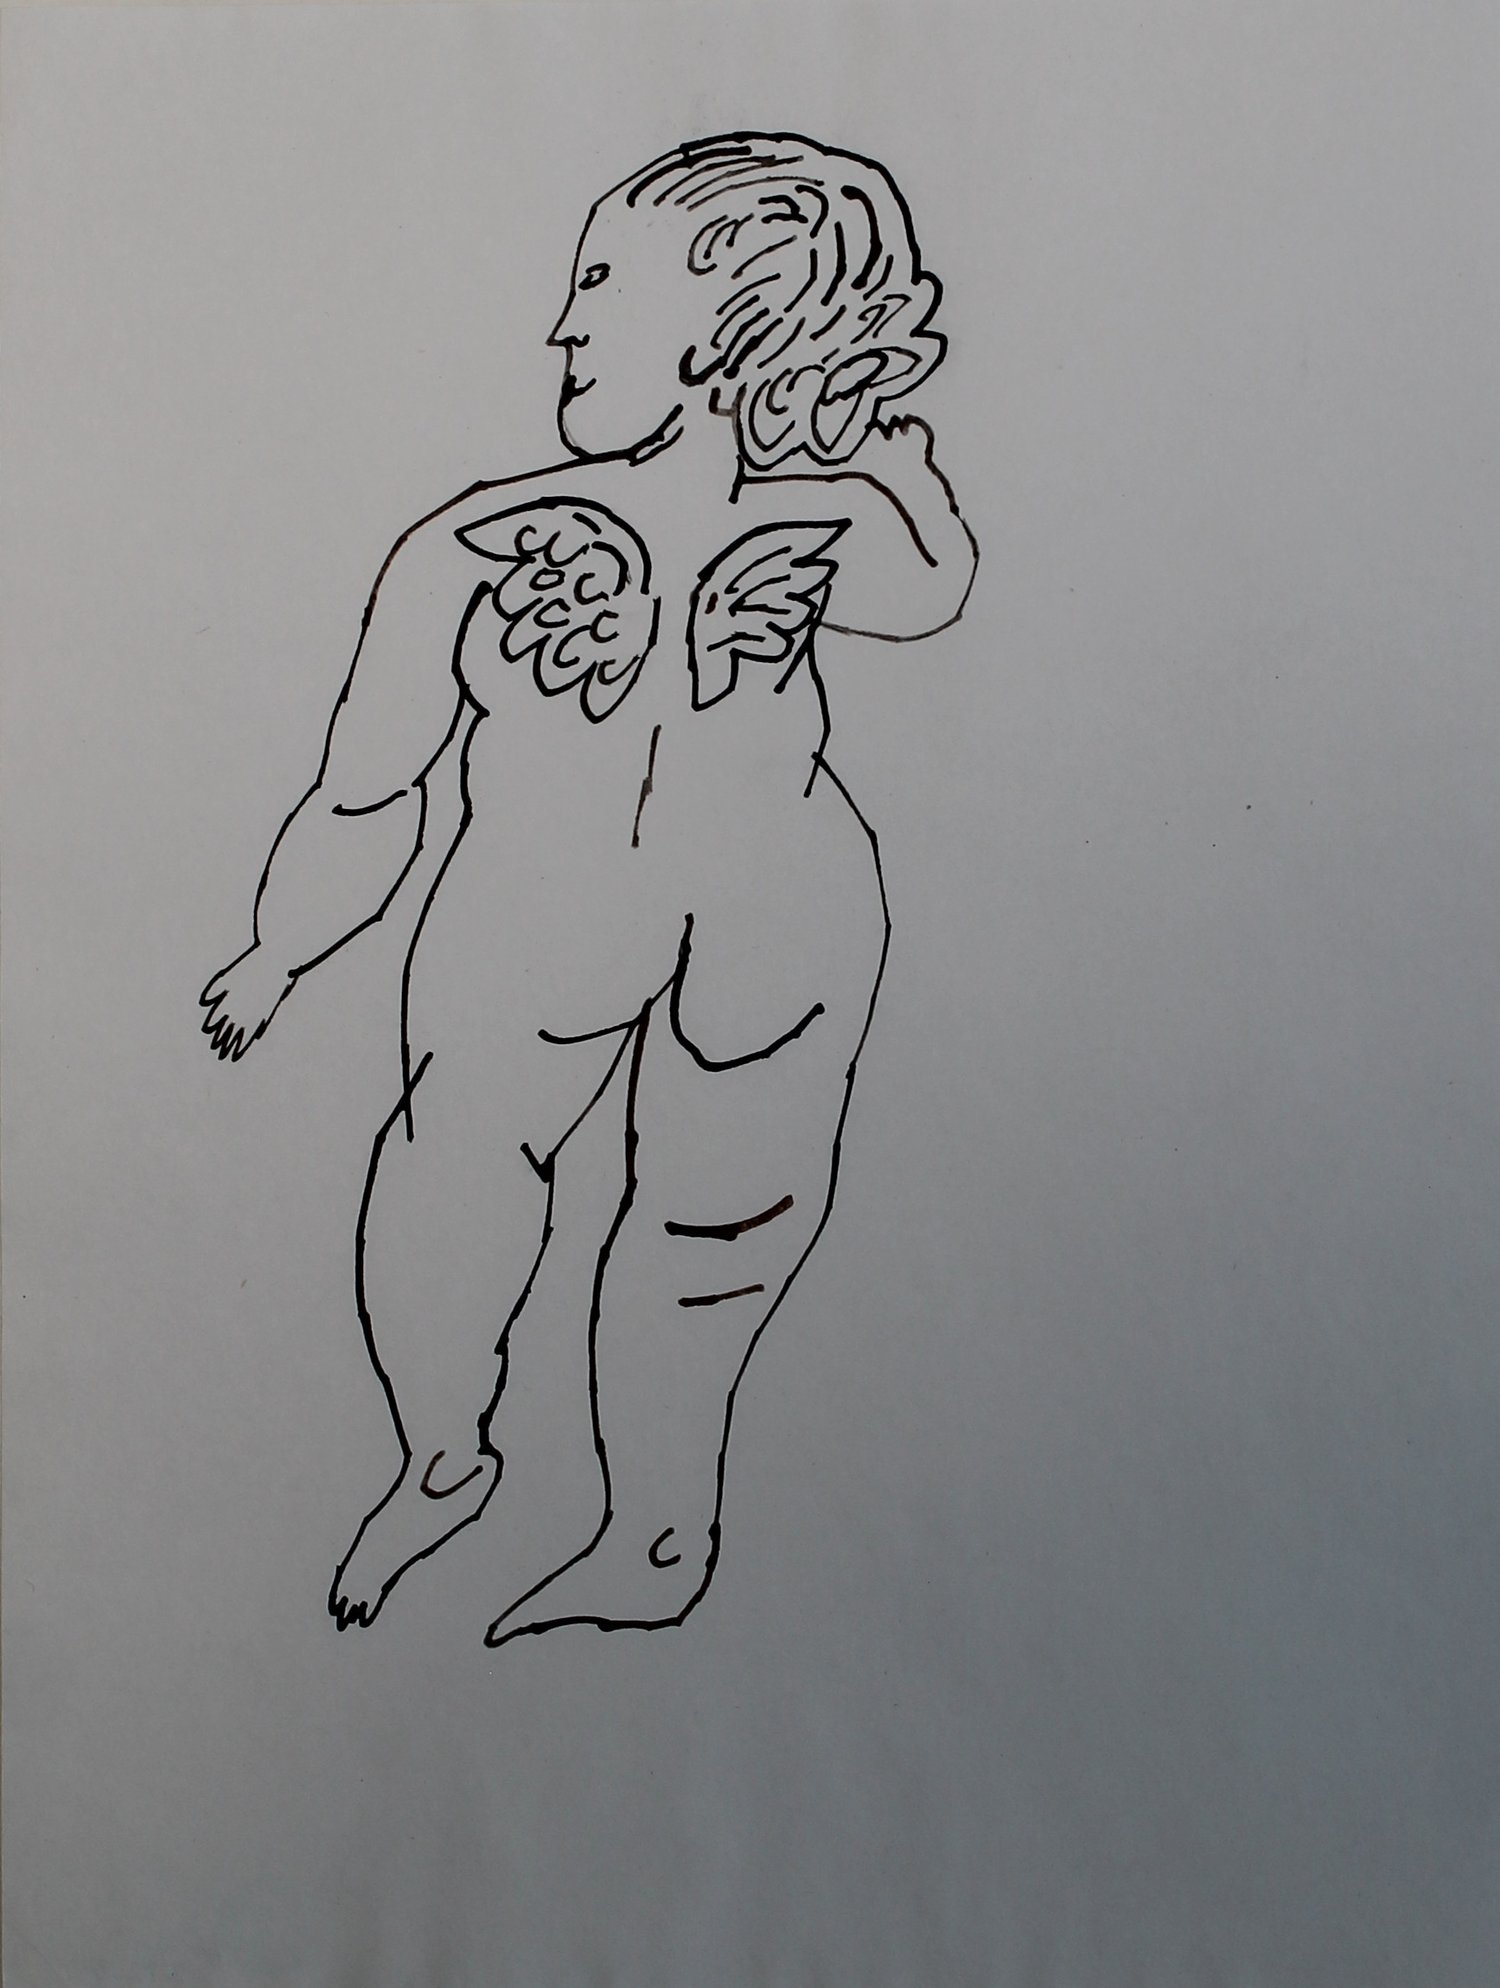 image of andy warhol work on paper of angel with tiny wings